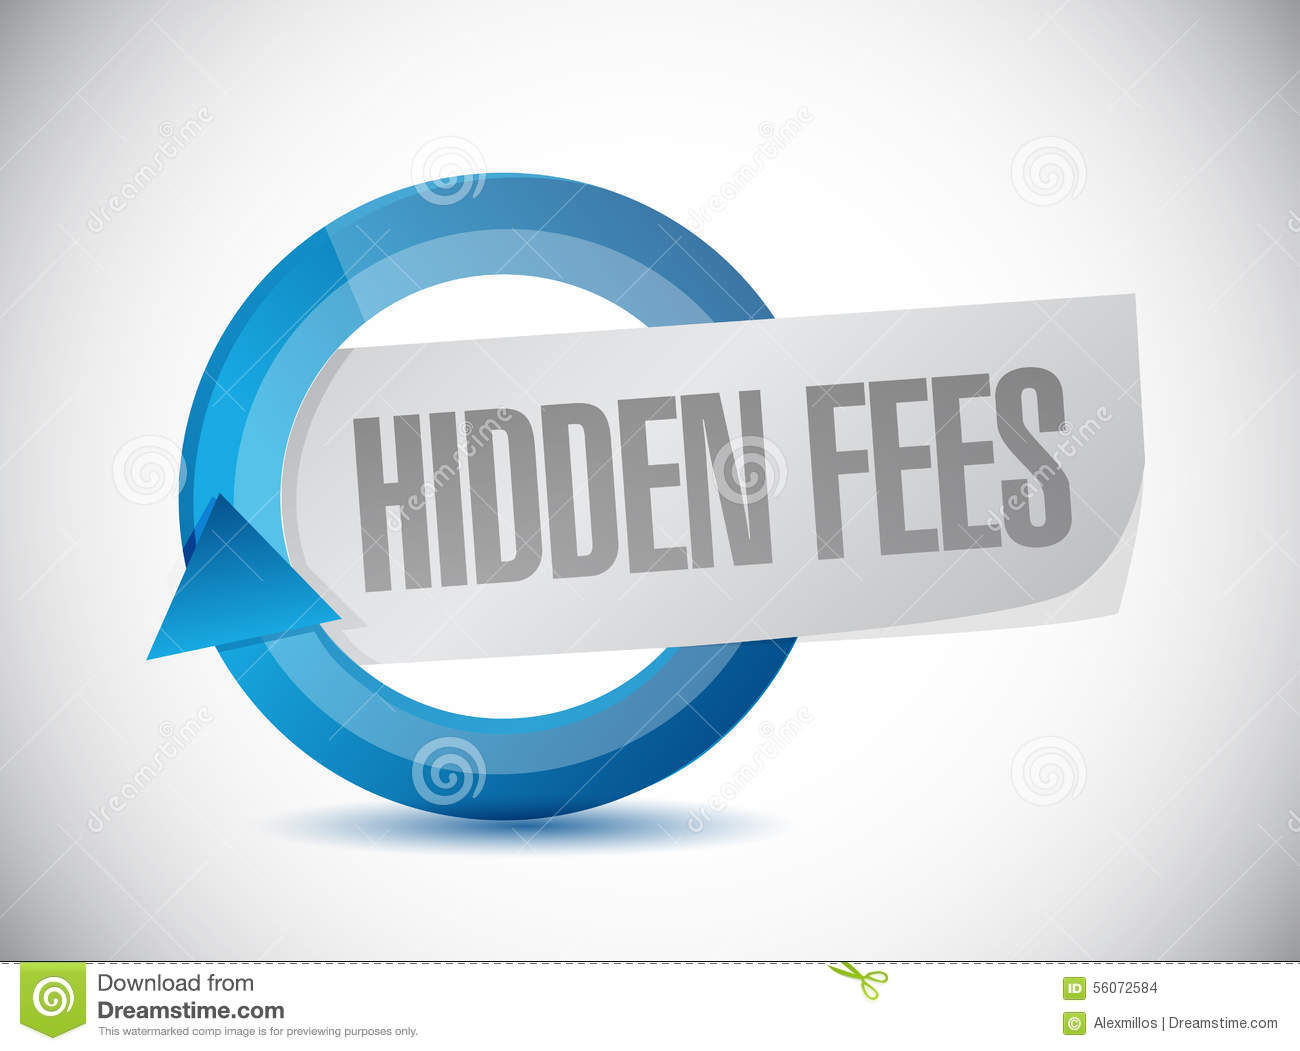 Holiday Airline Fees